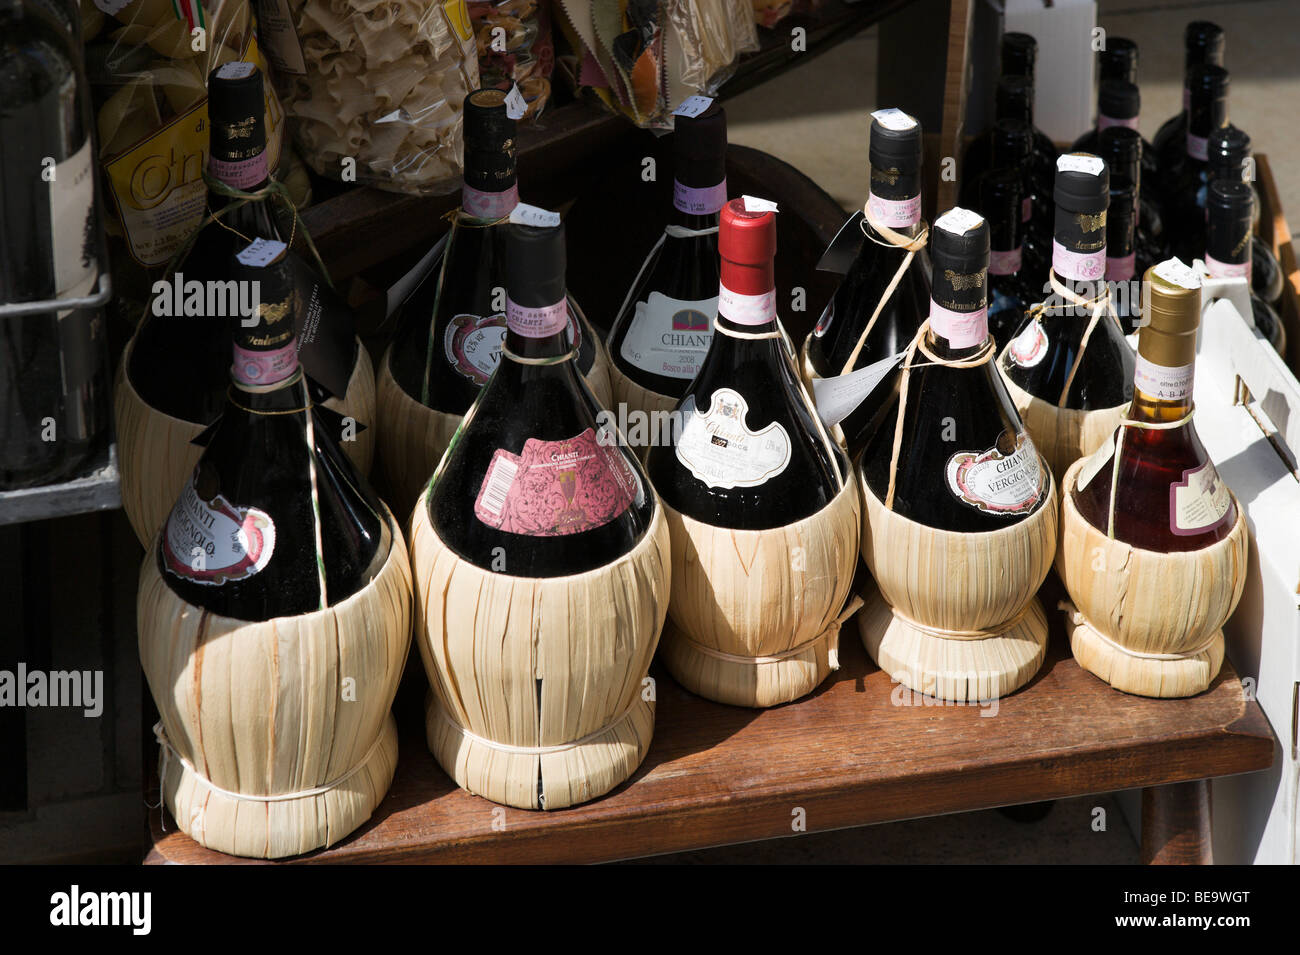 Shop selling local chianti wine in traditional bottles (fiaschi), the old town, San Gimignano, Tuscany, Italy - Stock Image